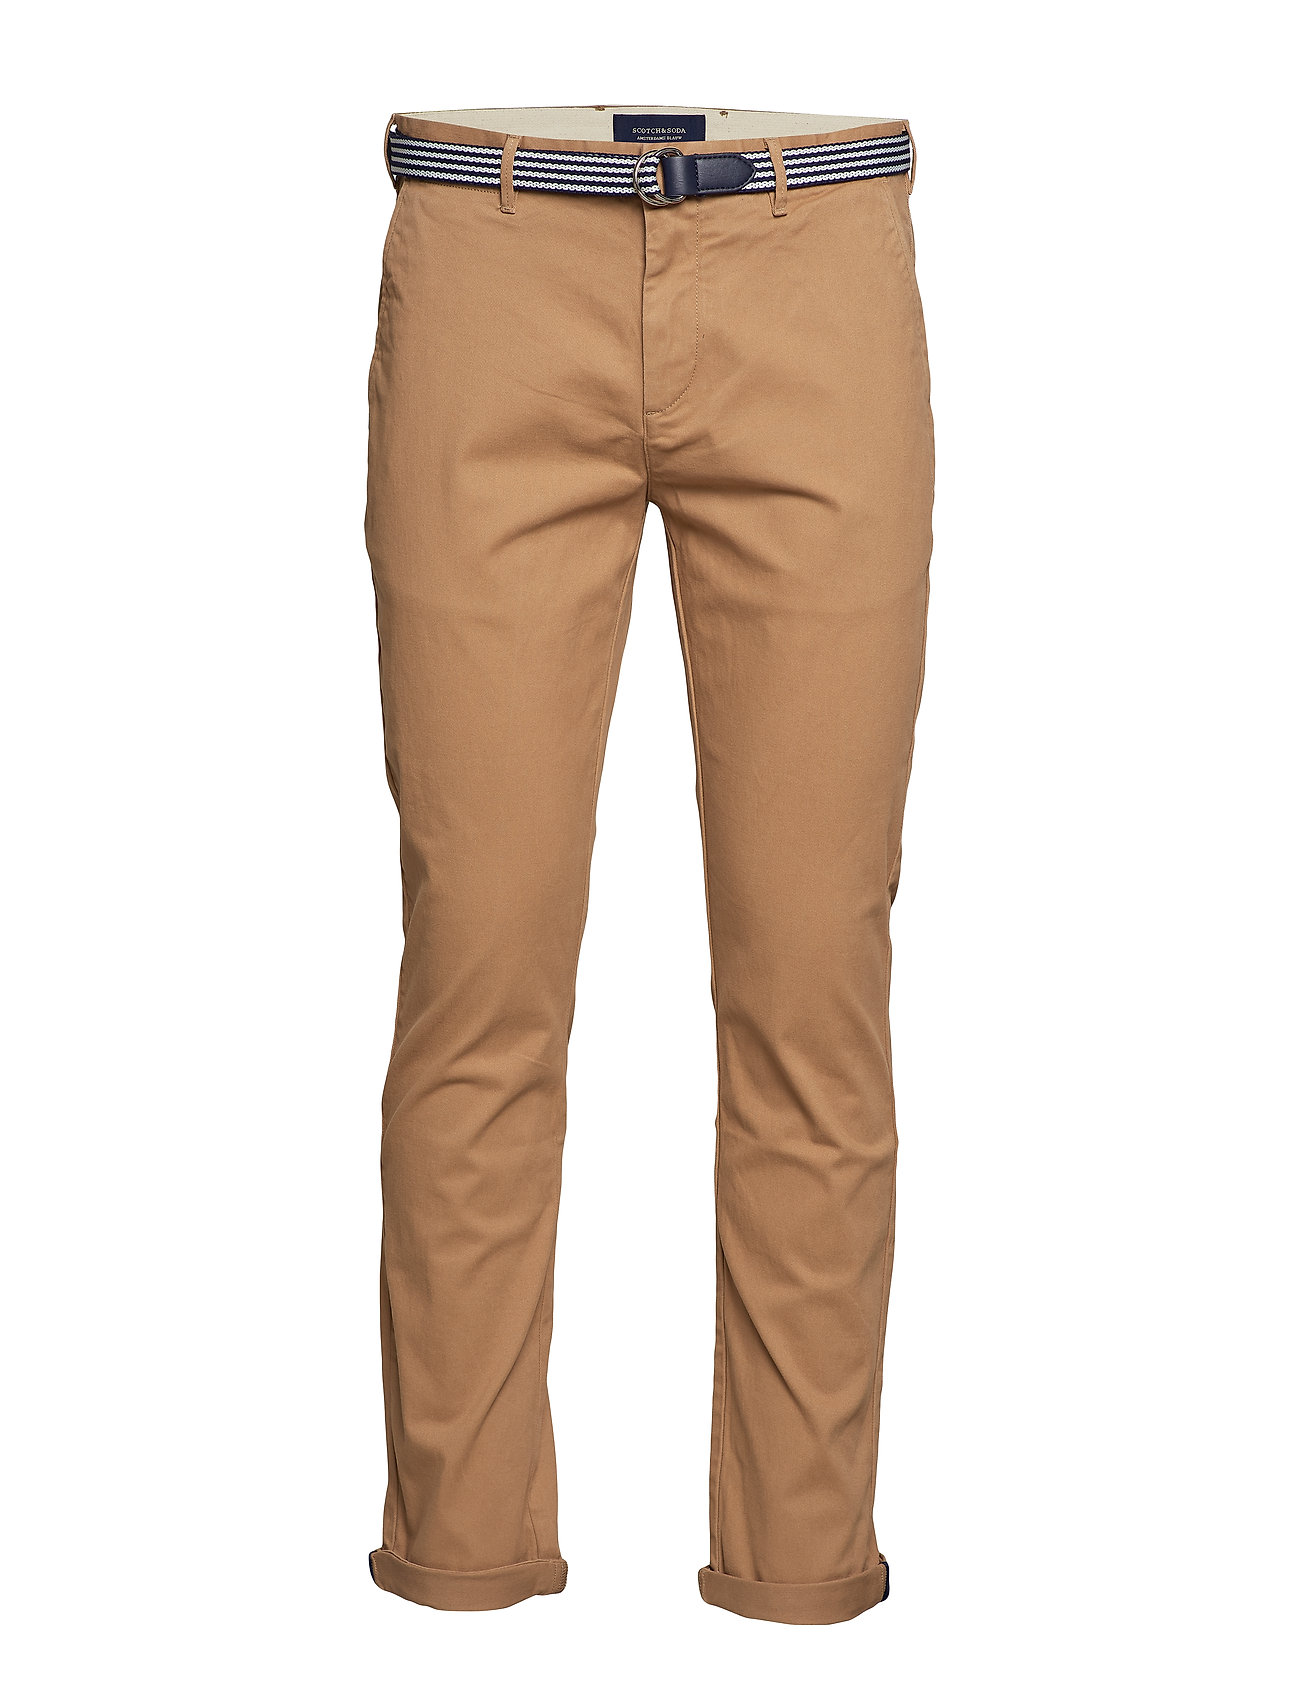 Scotch & Soda Ams Blauw Stuart chino with belt in stretch peached quality - KHAKI